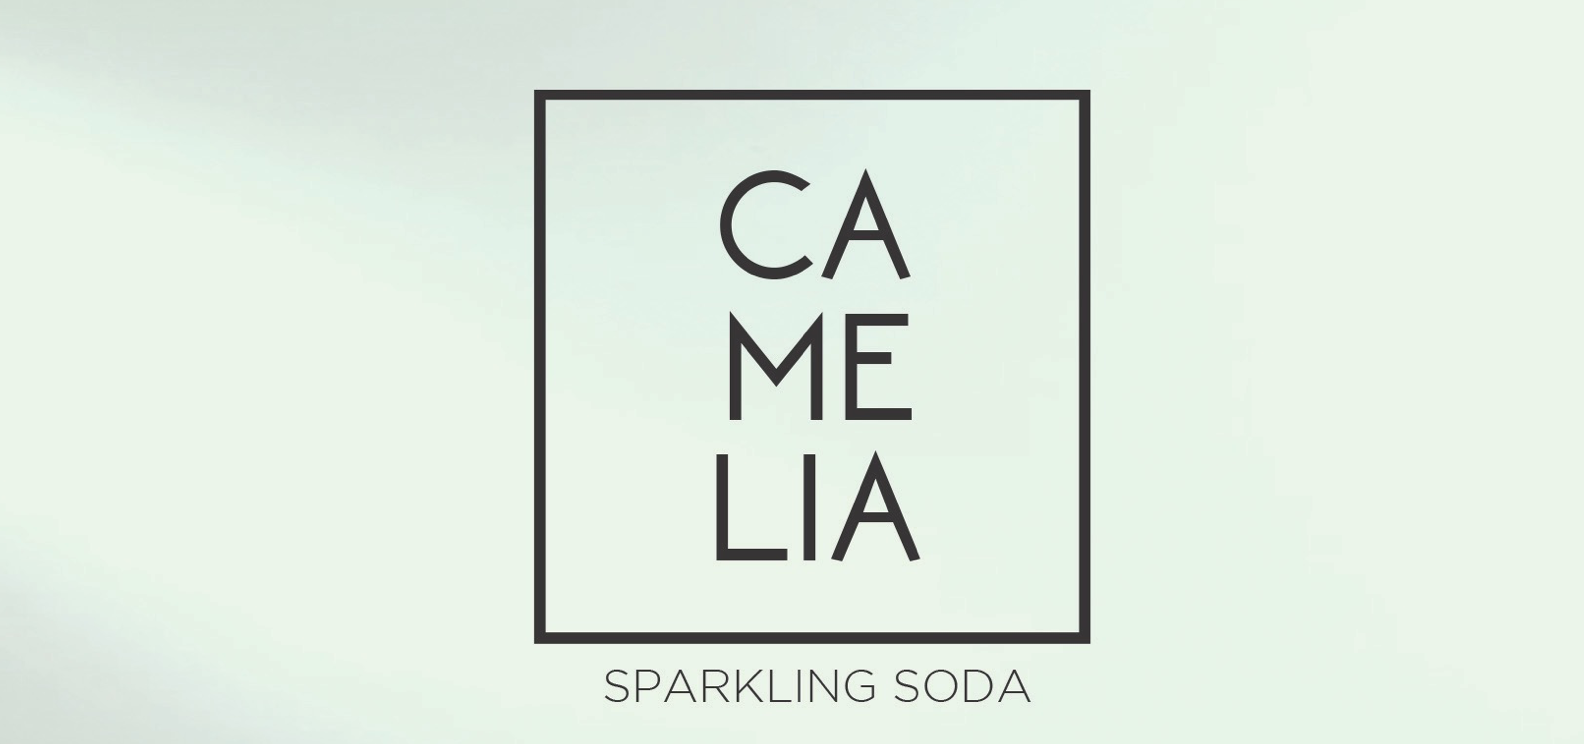 camelia - package design, branding